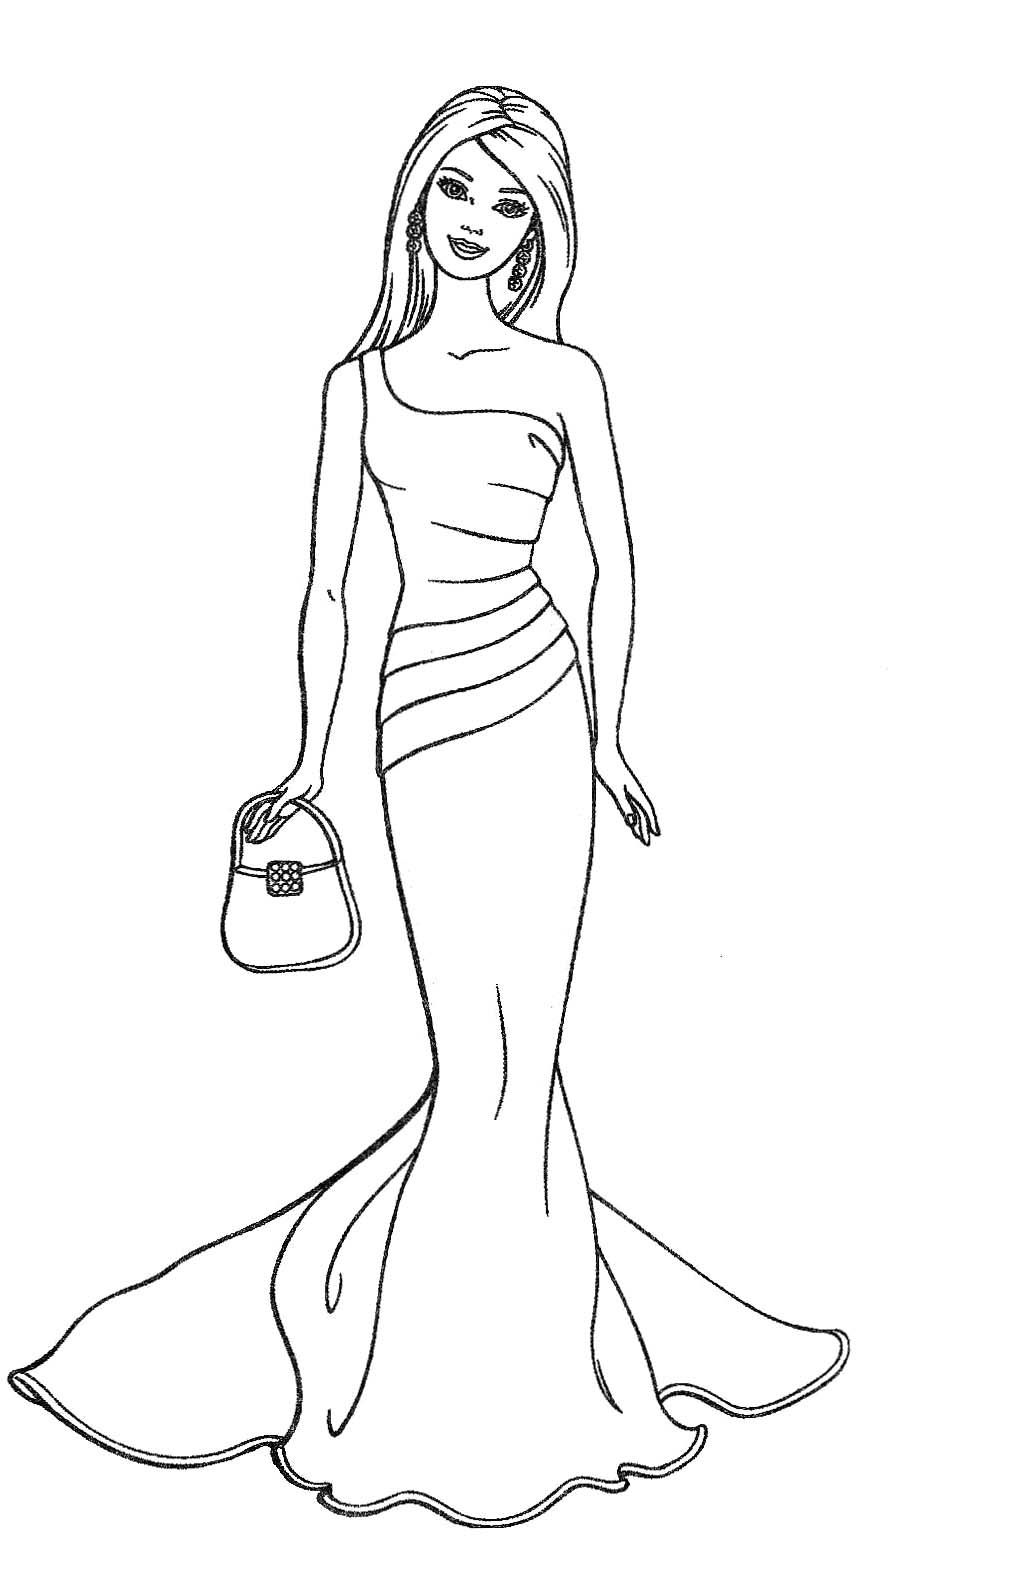 Barbie colouring in online free - Get The Latest Free Barbie Fashion Coloring Page Images Favorite Coloring Pages To Print Online